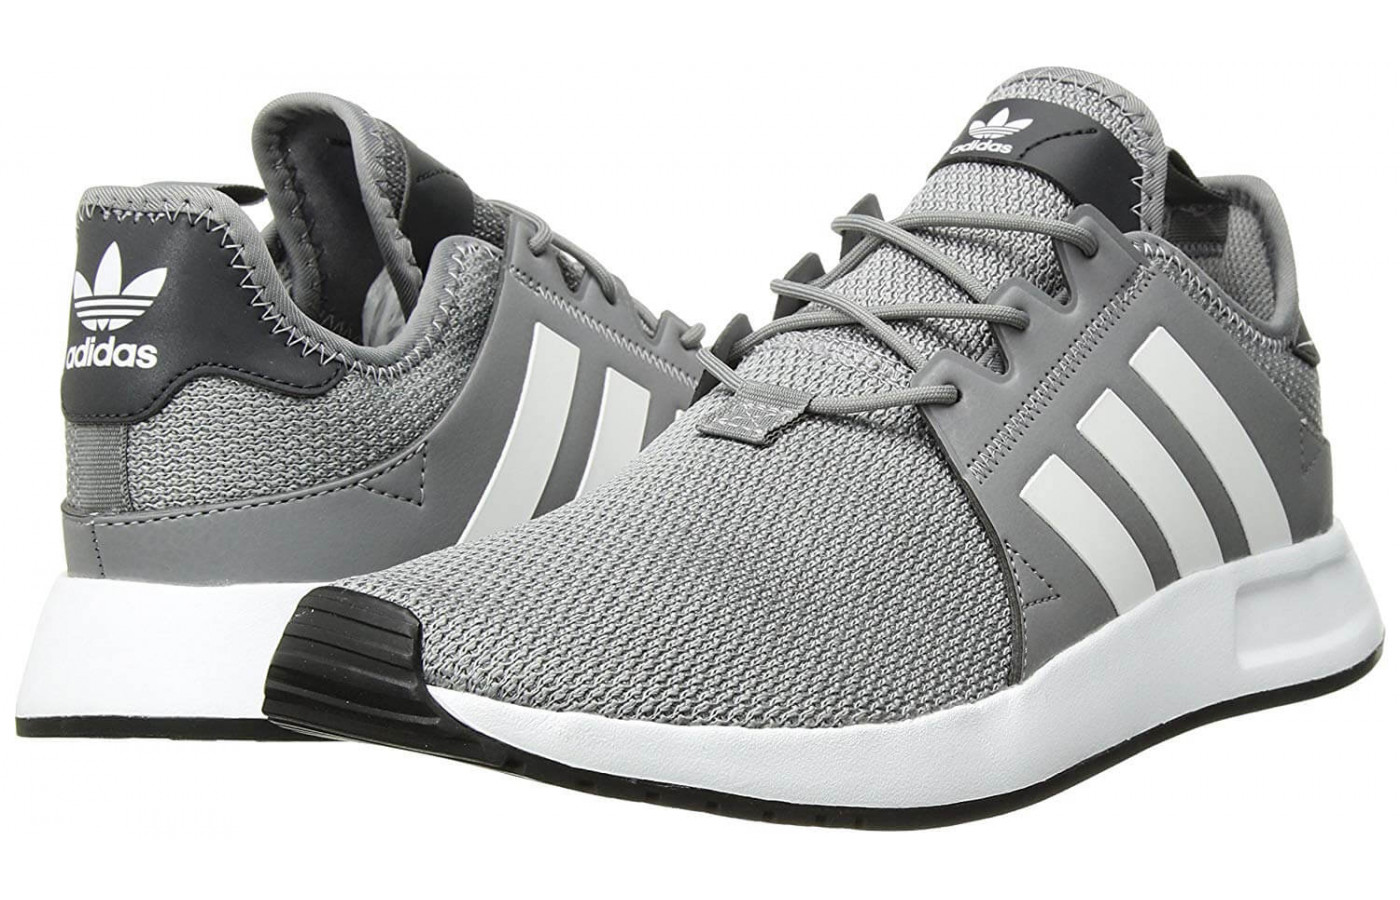 The Adidas X_PLR has a comfortable ortholite sicklier